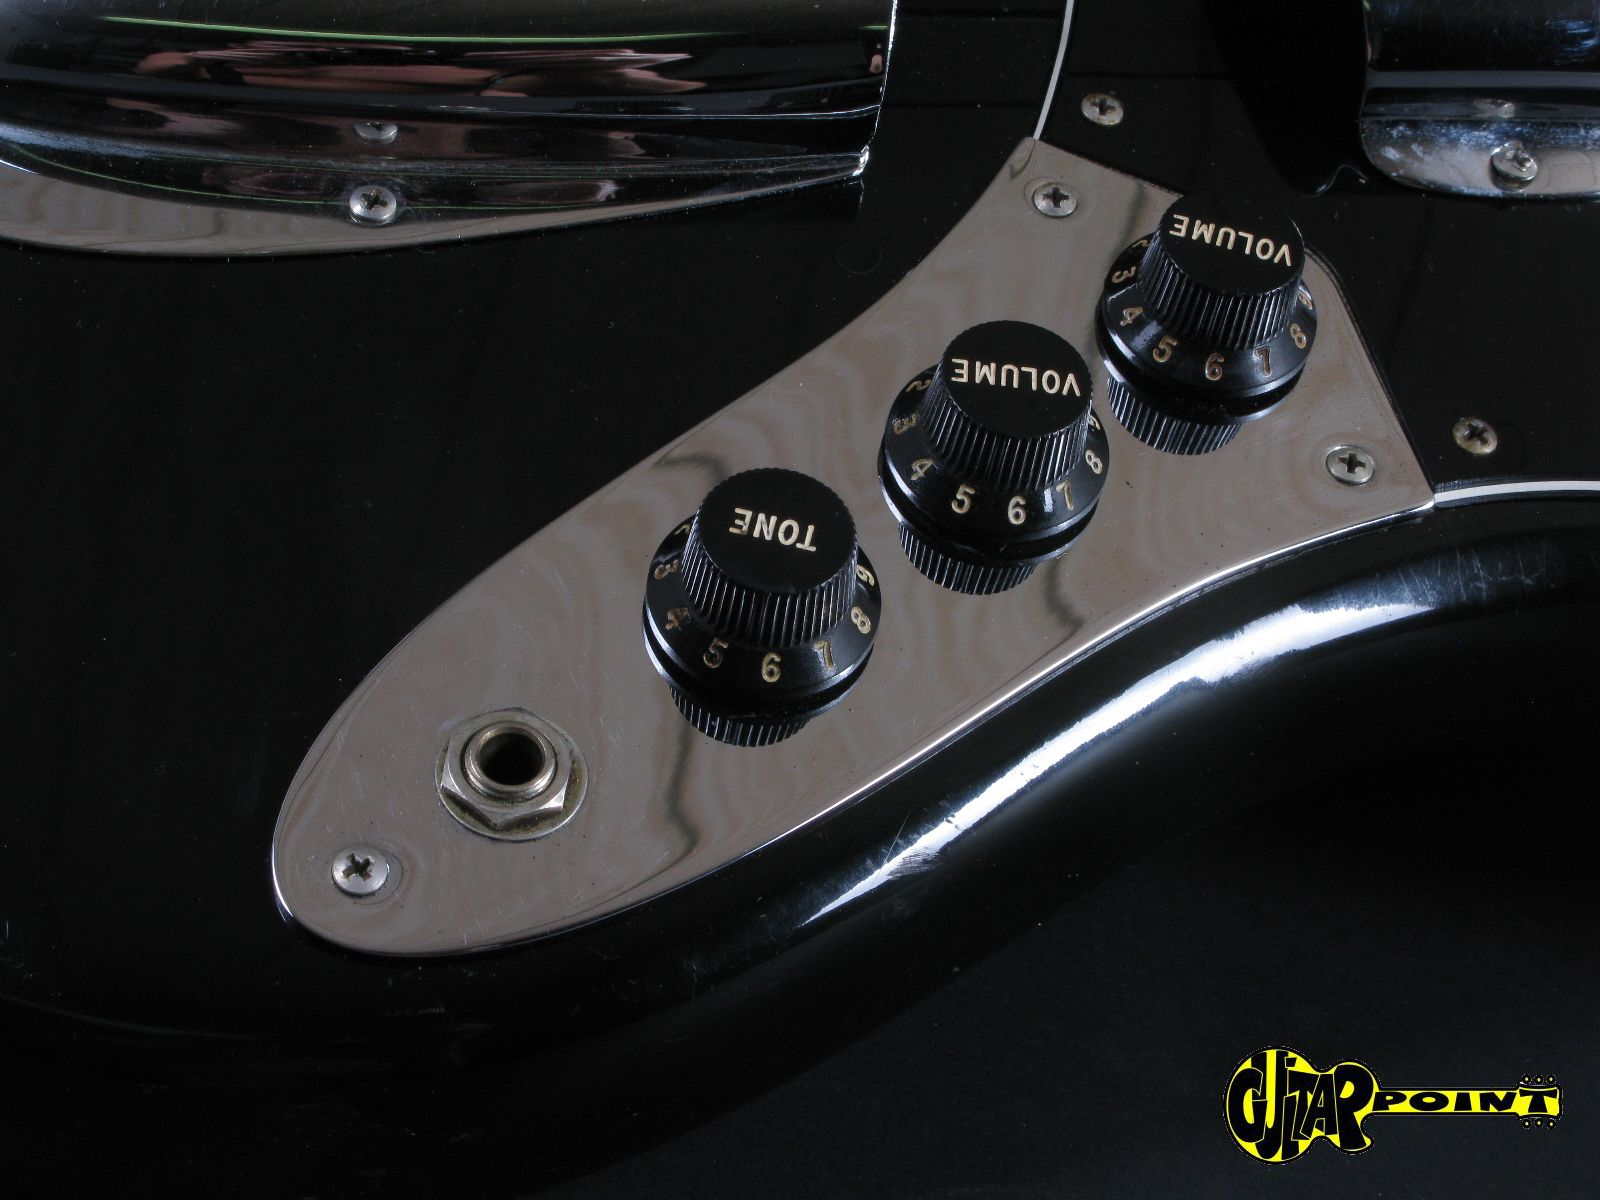 Fender Jazz Bass Wallpaper Fender jazz bass 1977 1600x1200